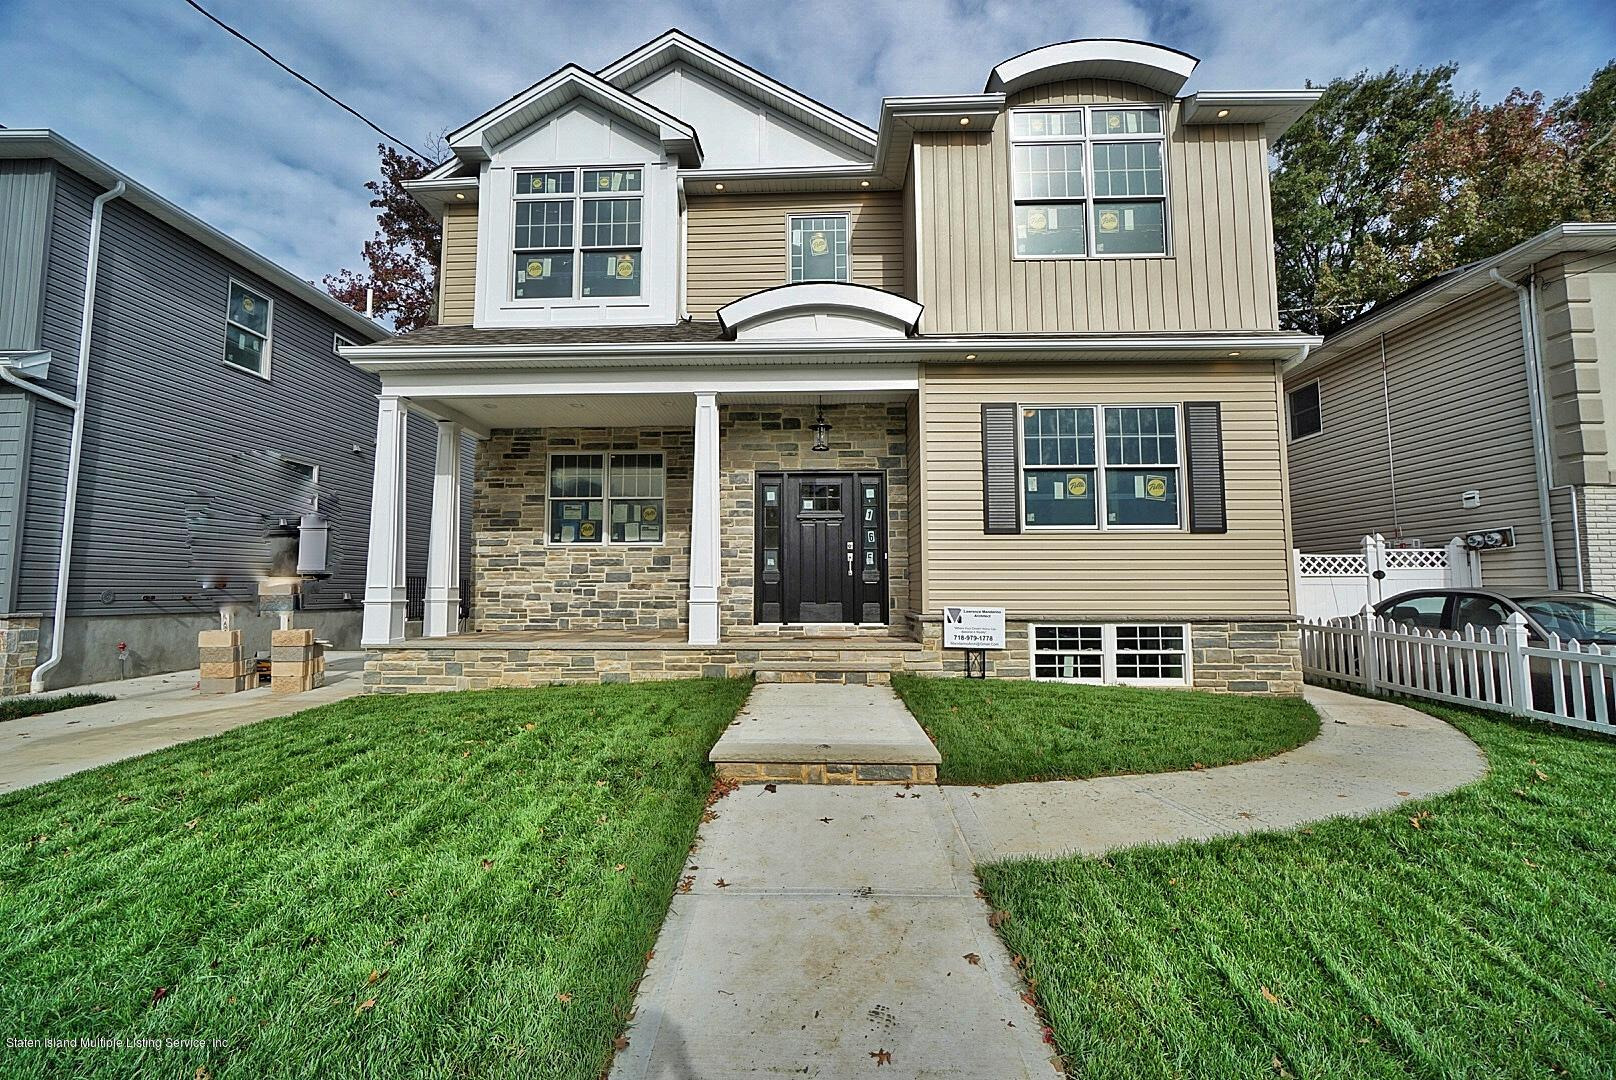 Two Family - Detached 169 Bathgate St   Staten Island, NY 10312, MLS-1122726-2